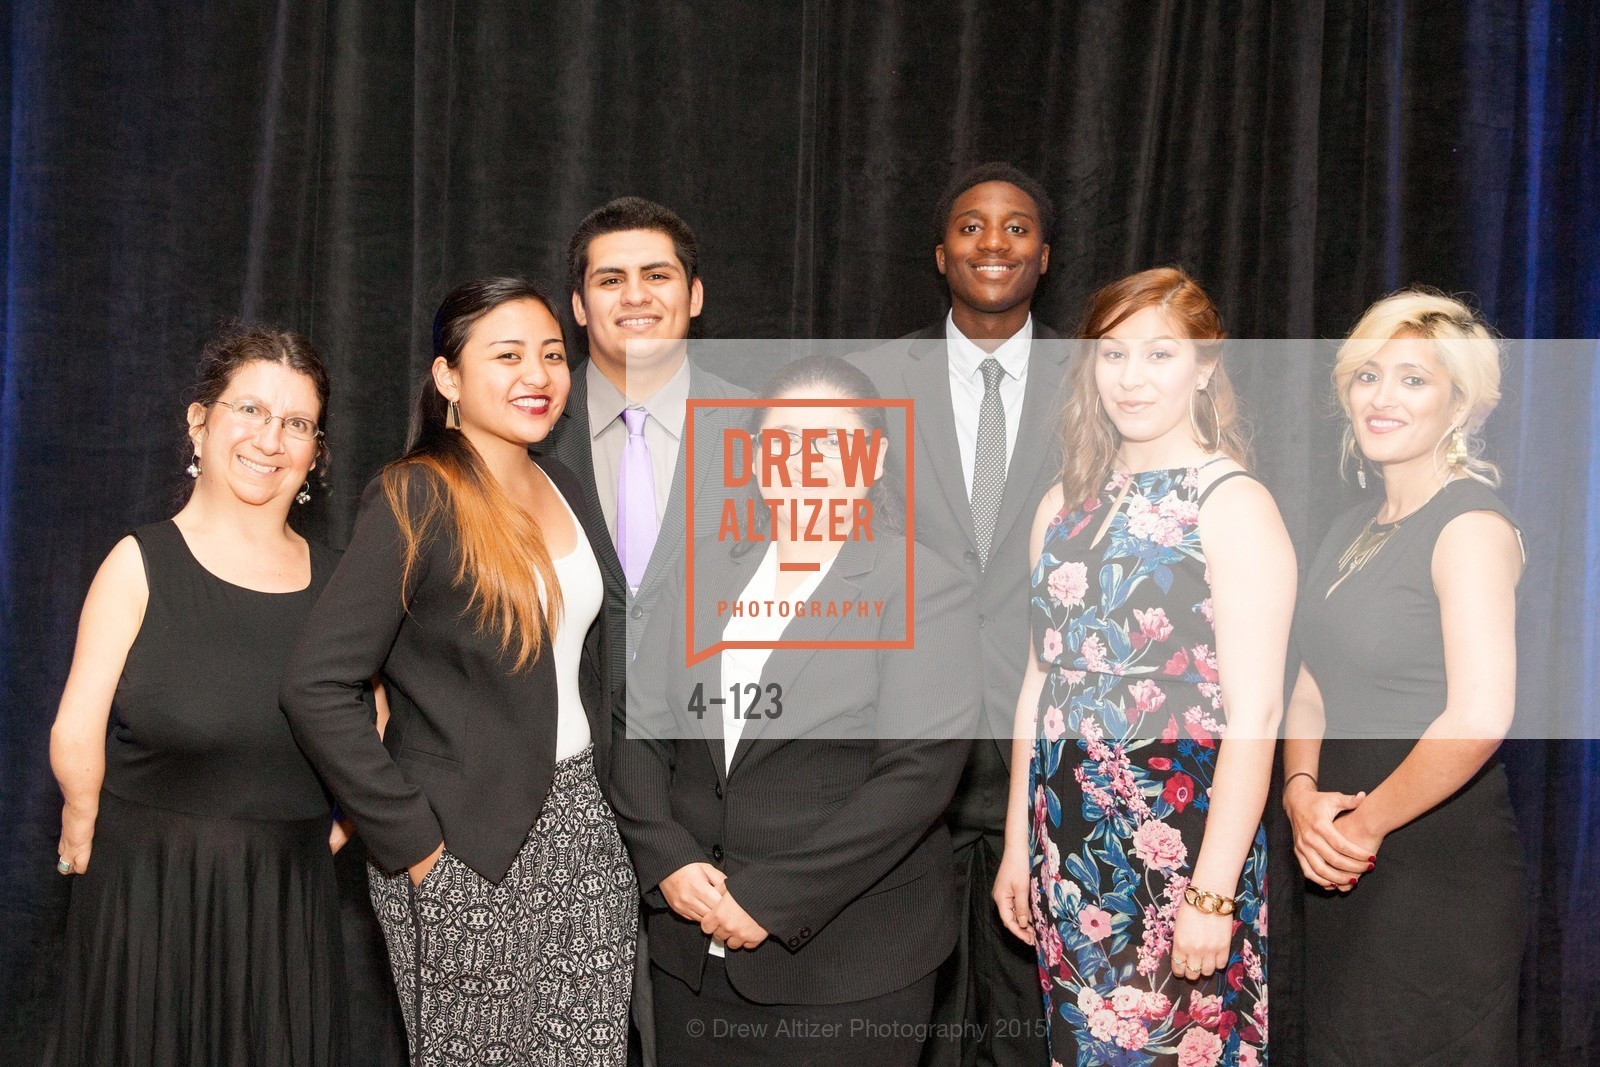 Jennifer Berger, Aeris Velasco, Joe Armijo, Carmen Sosa, Khari Brown, Yuri Huerta, Natasha Alani, 2015 Boys and Girls Club Annual Gala, The Fairmont San Francisco. 950 Mason St, May 20th, 2015,Drew Altizer, Drew Altizer Photography, full-service agency, private events, San Francisco photographer, photographer california